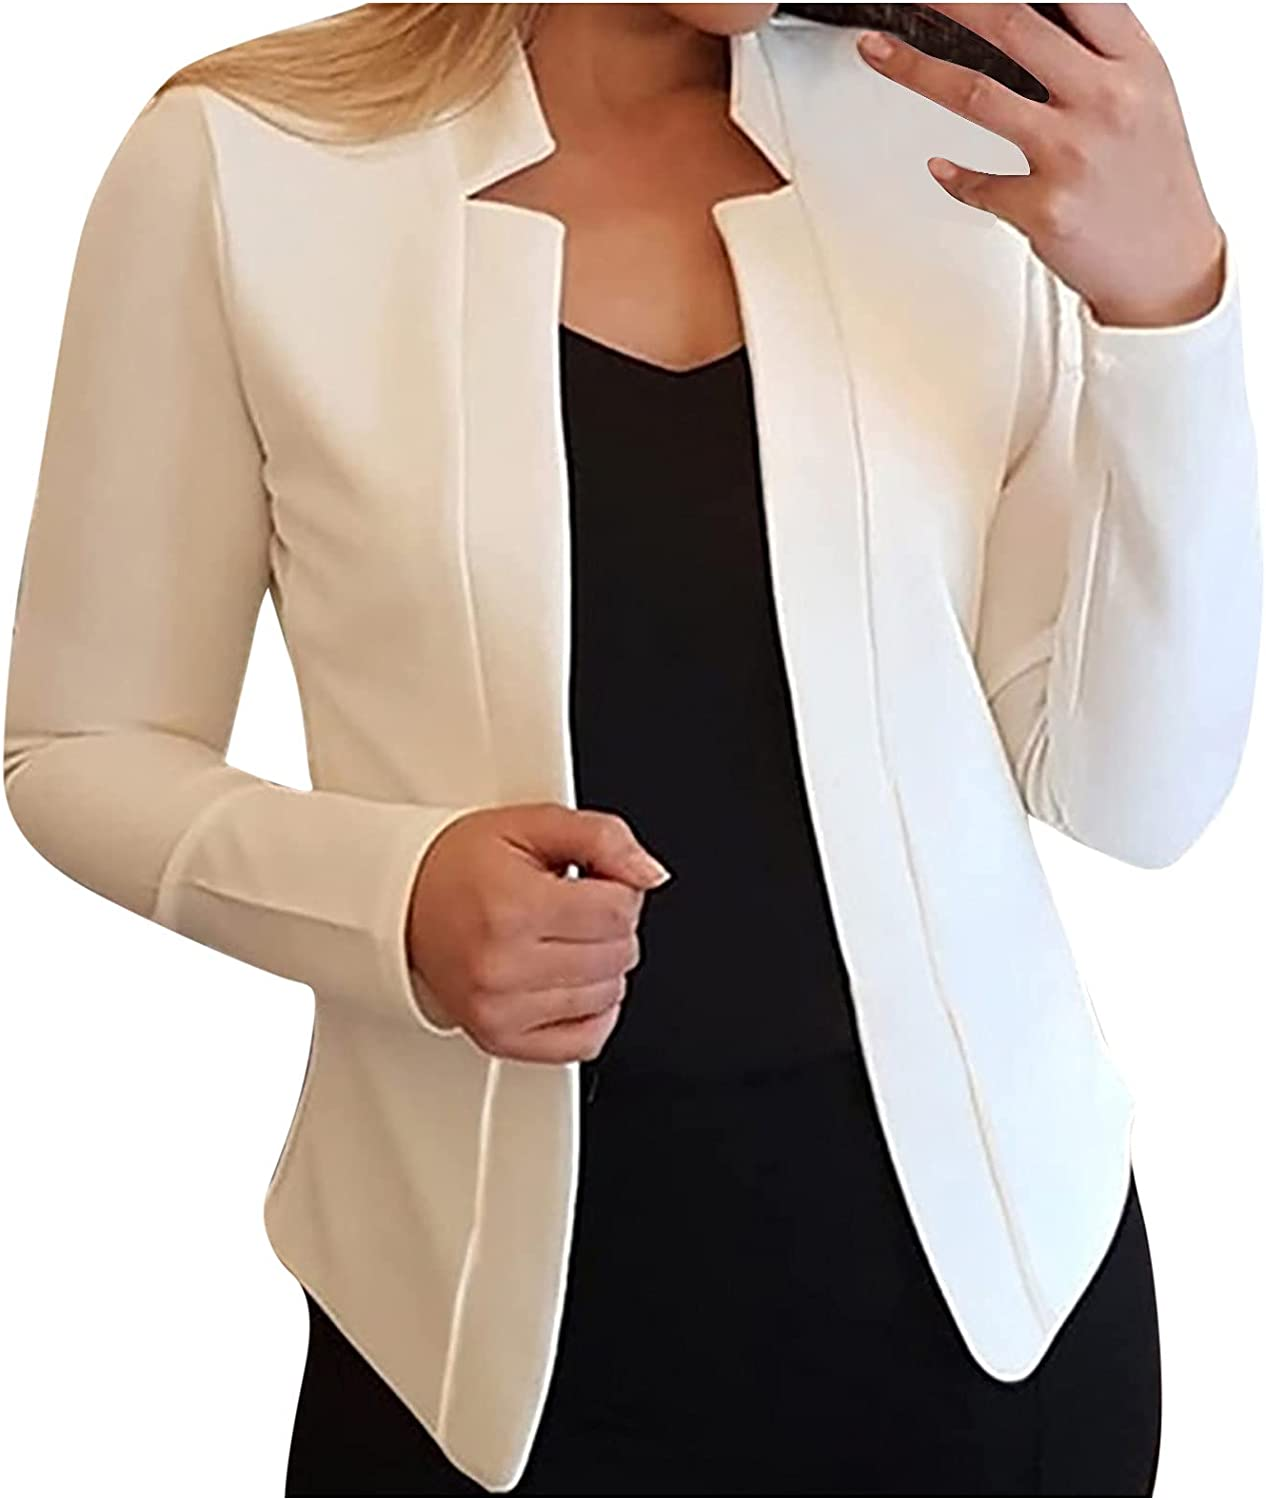 Blazer Jackets for Women Casual Max 45% OFF Solid Front Open Business C Suit Virginia Beach Mall